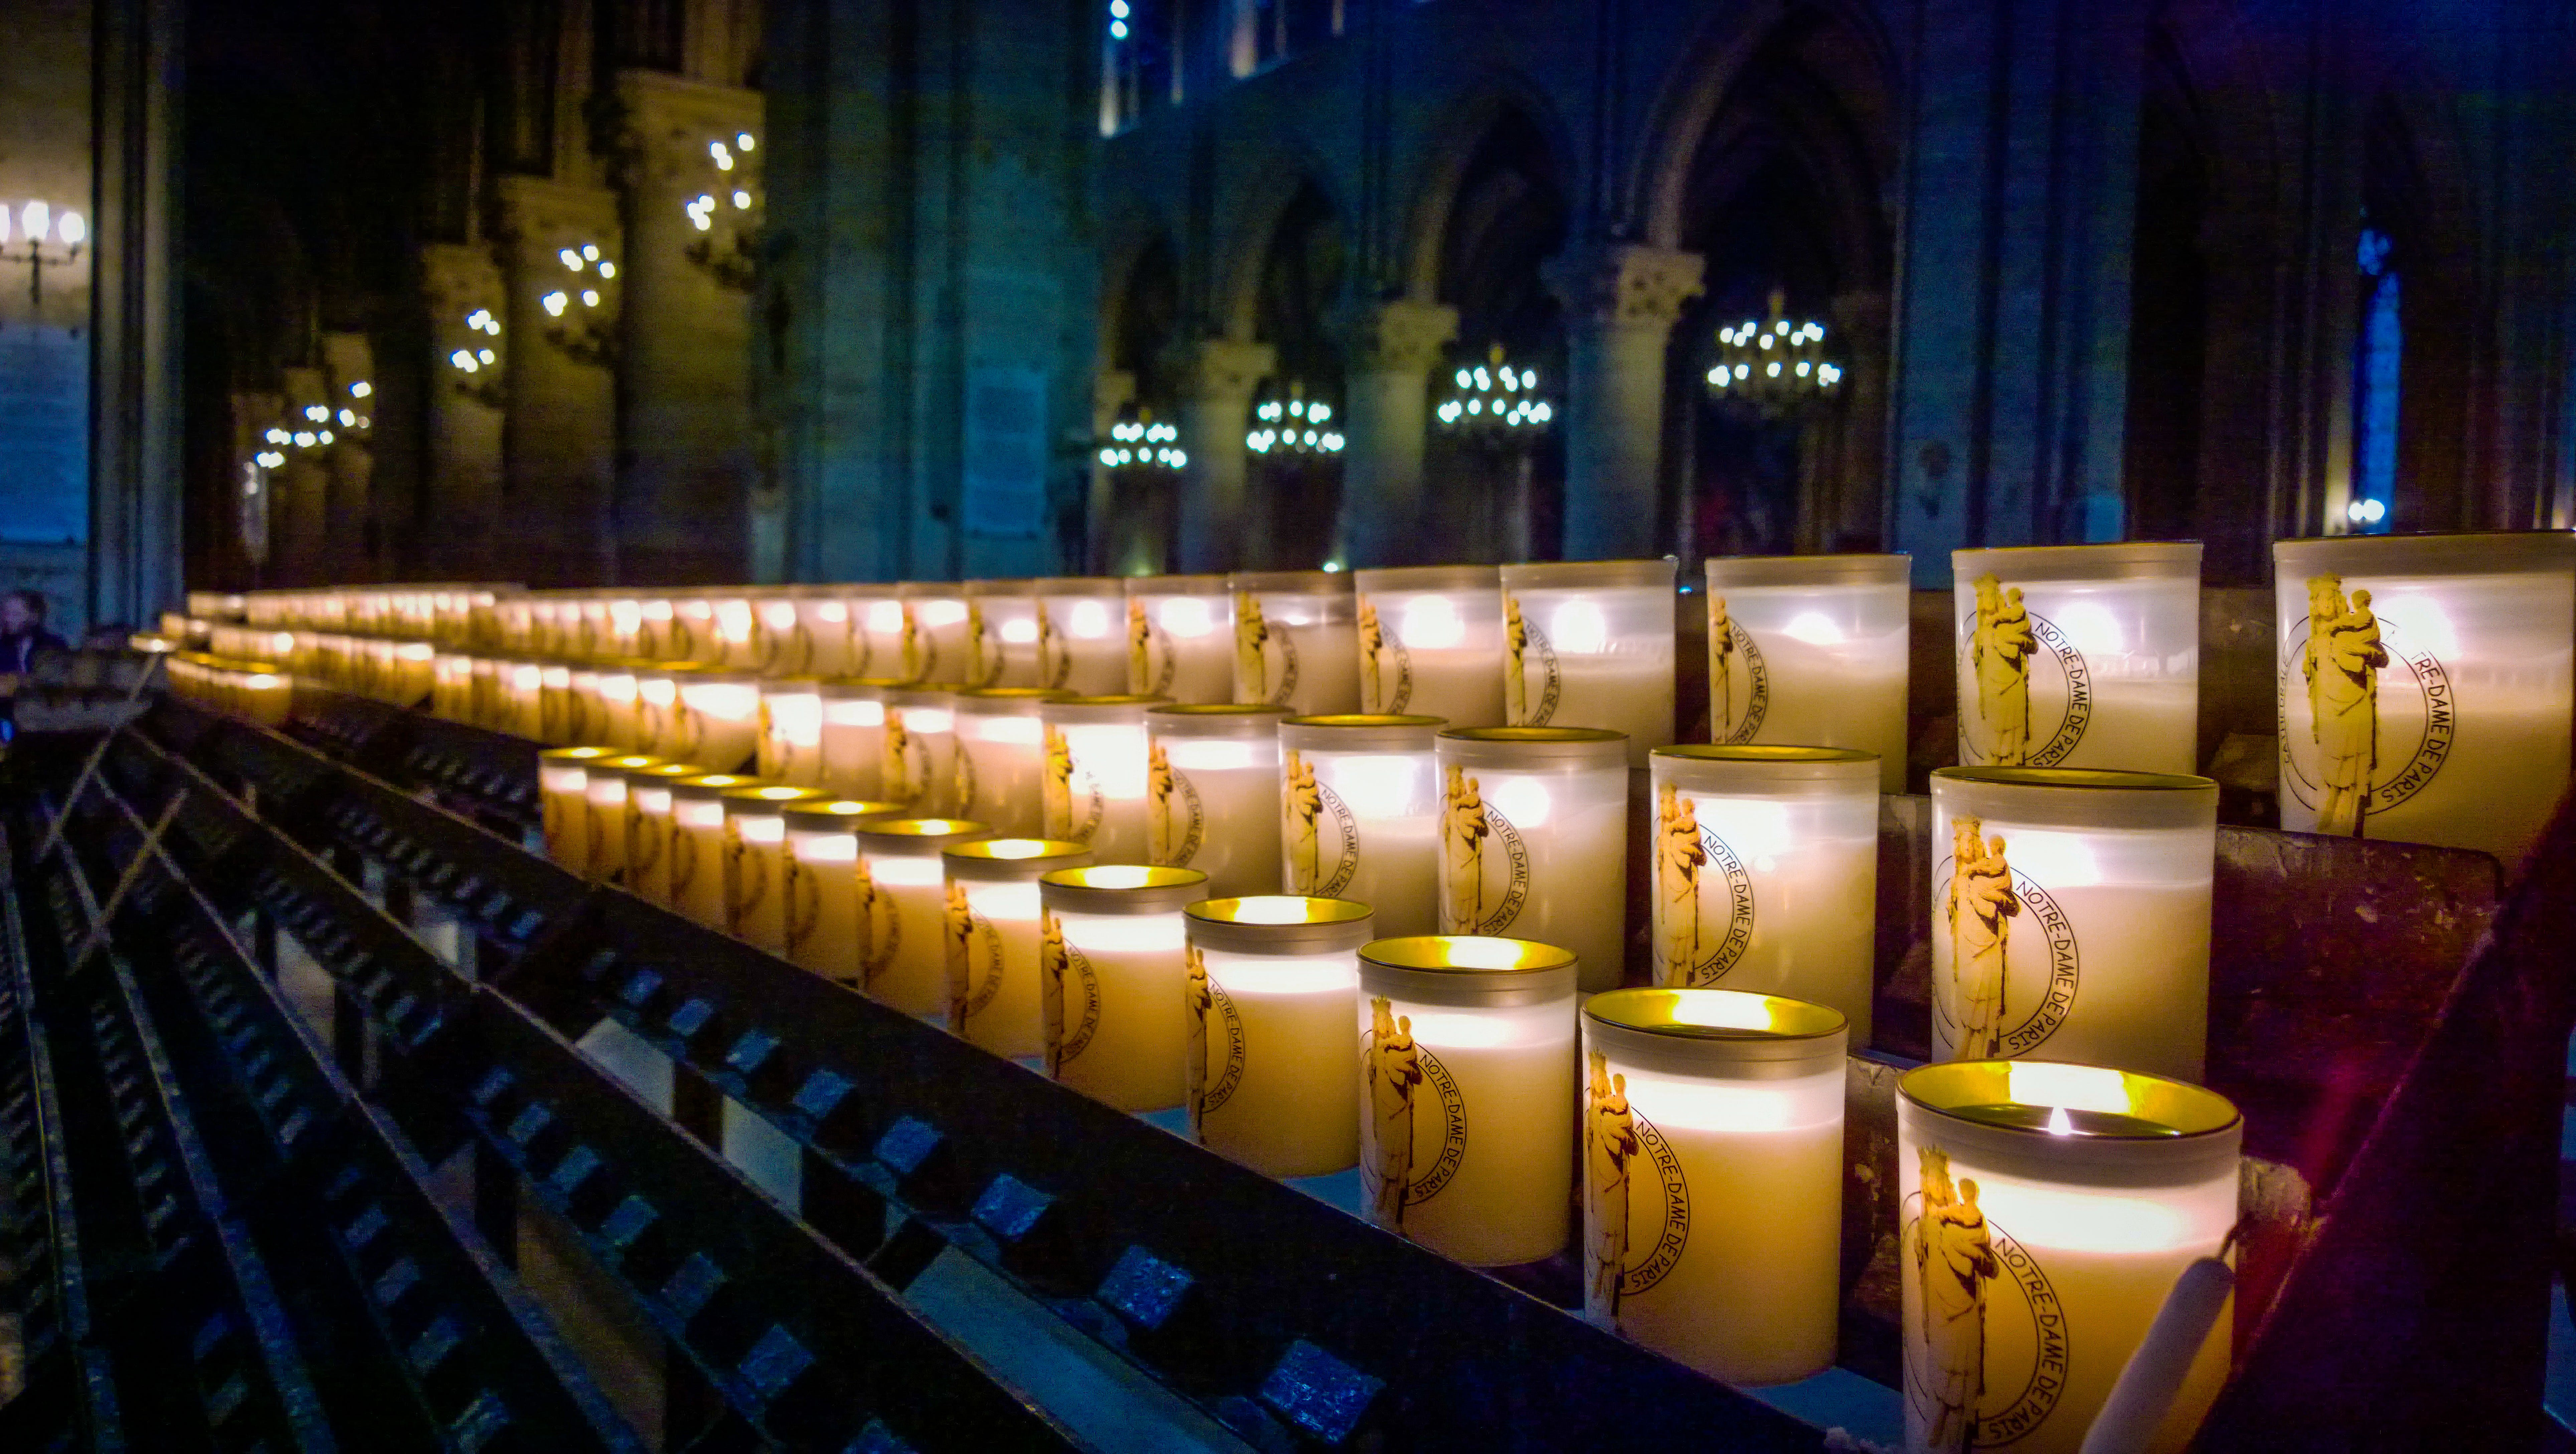 Free stock photo of candles, church, notre dame, worship